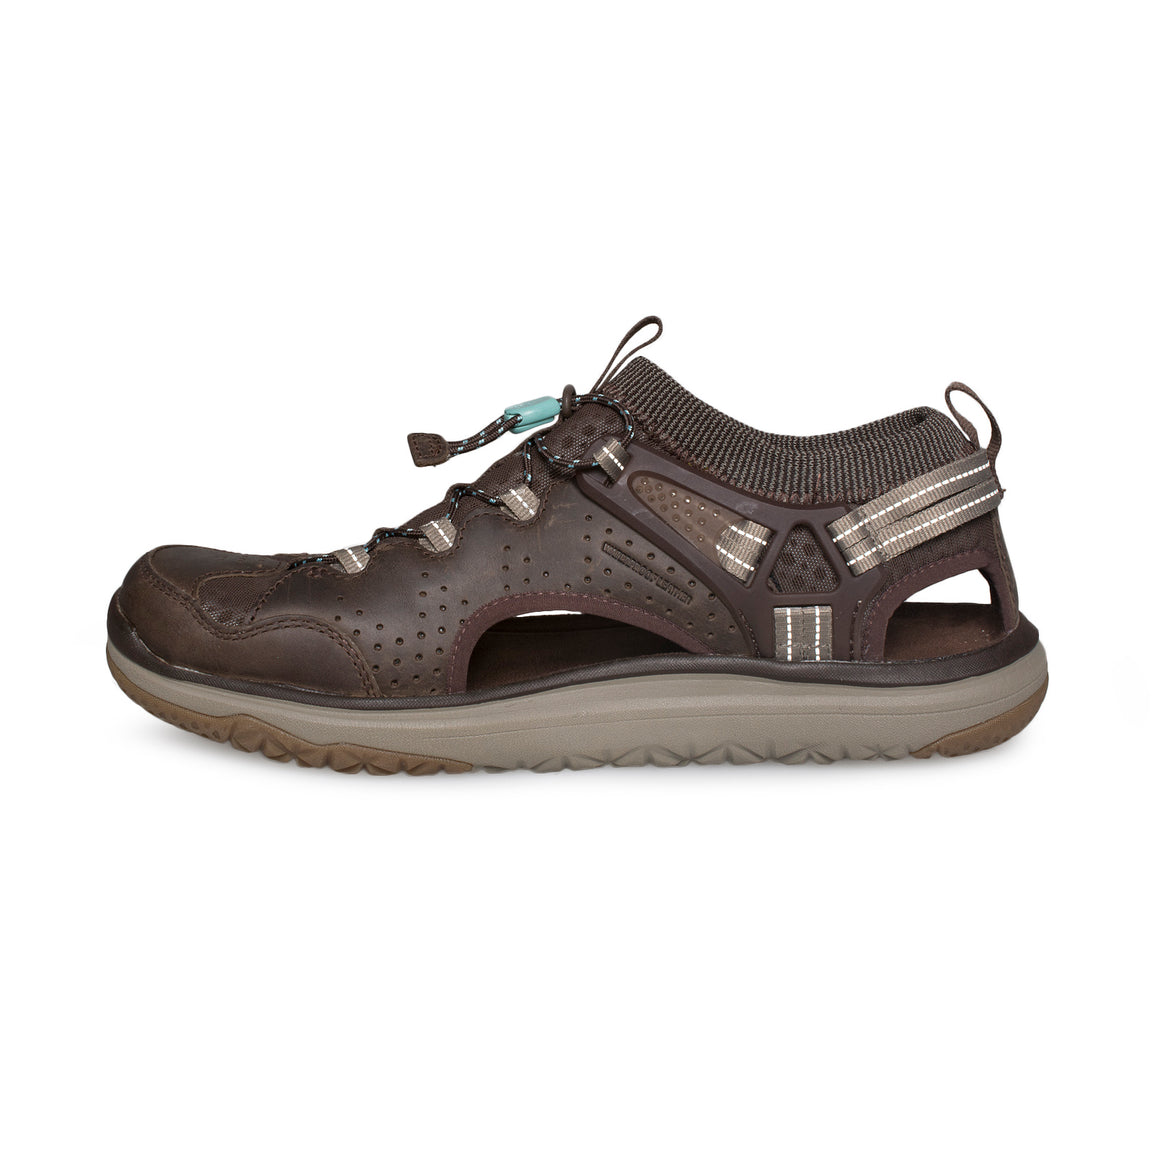 TEVA Terra Float Travel Lace Chocolate Brown Sandals - Women's